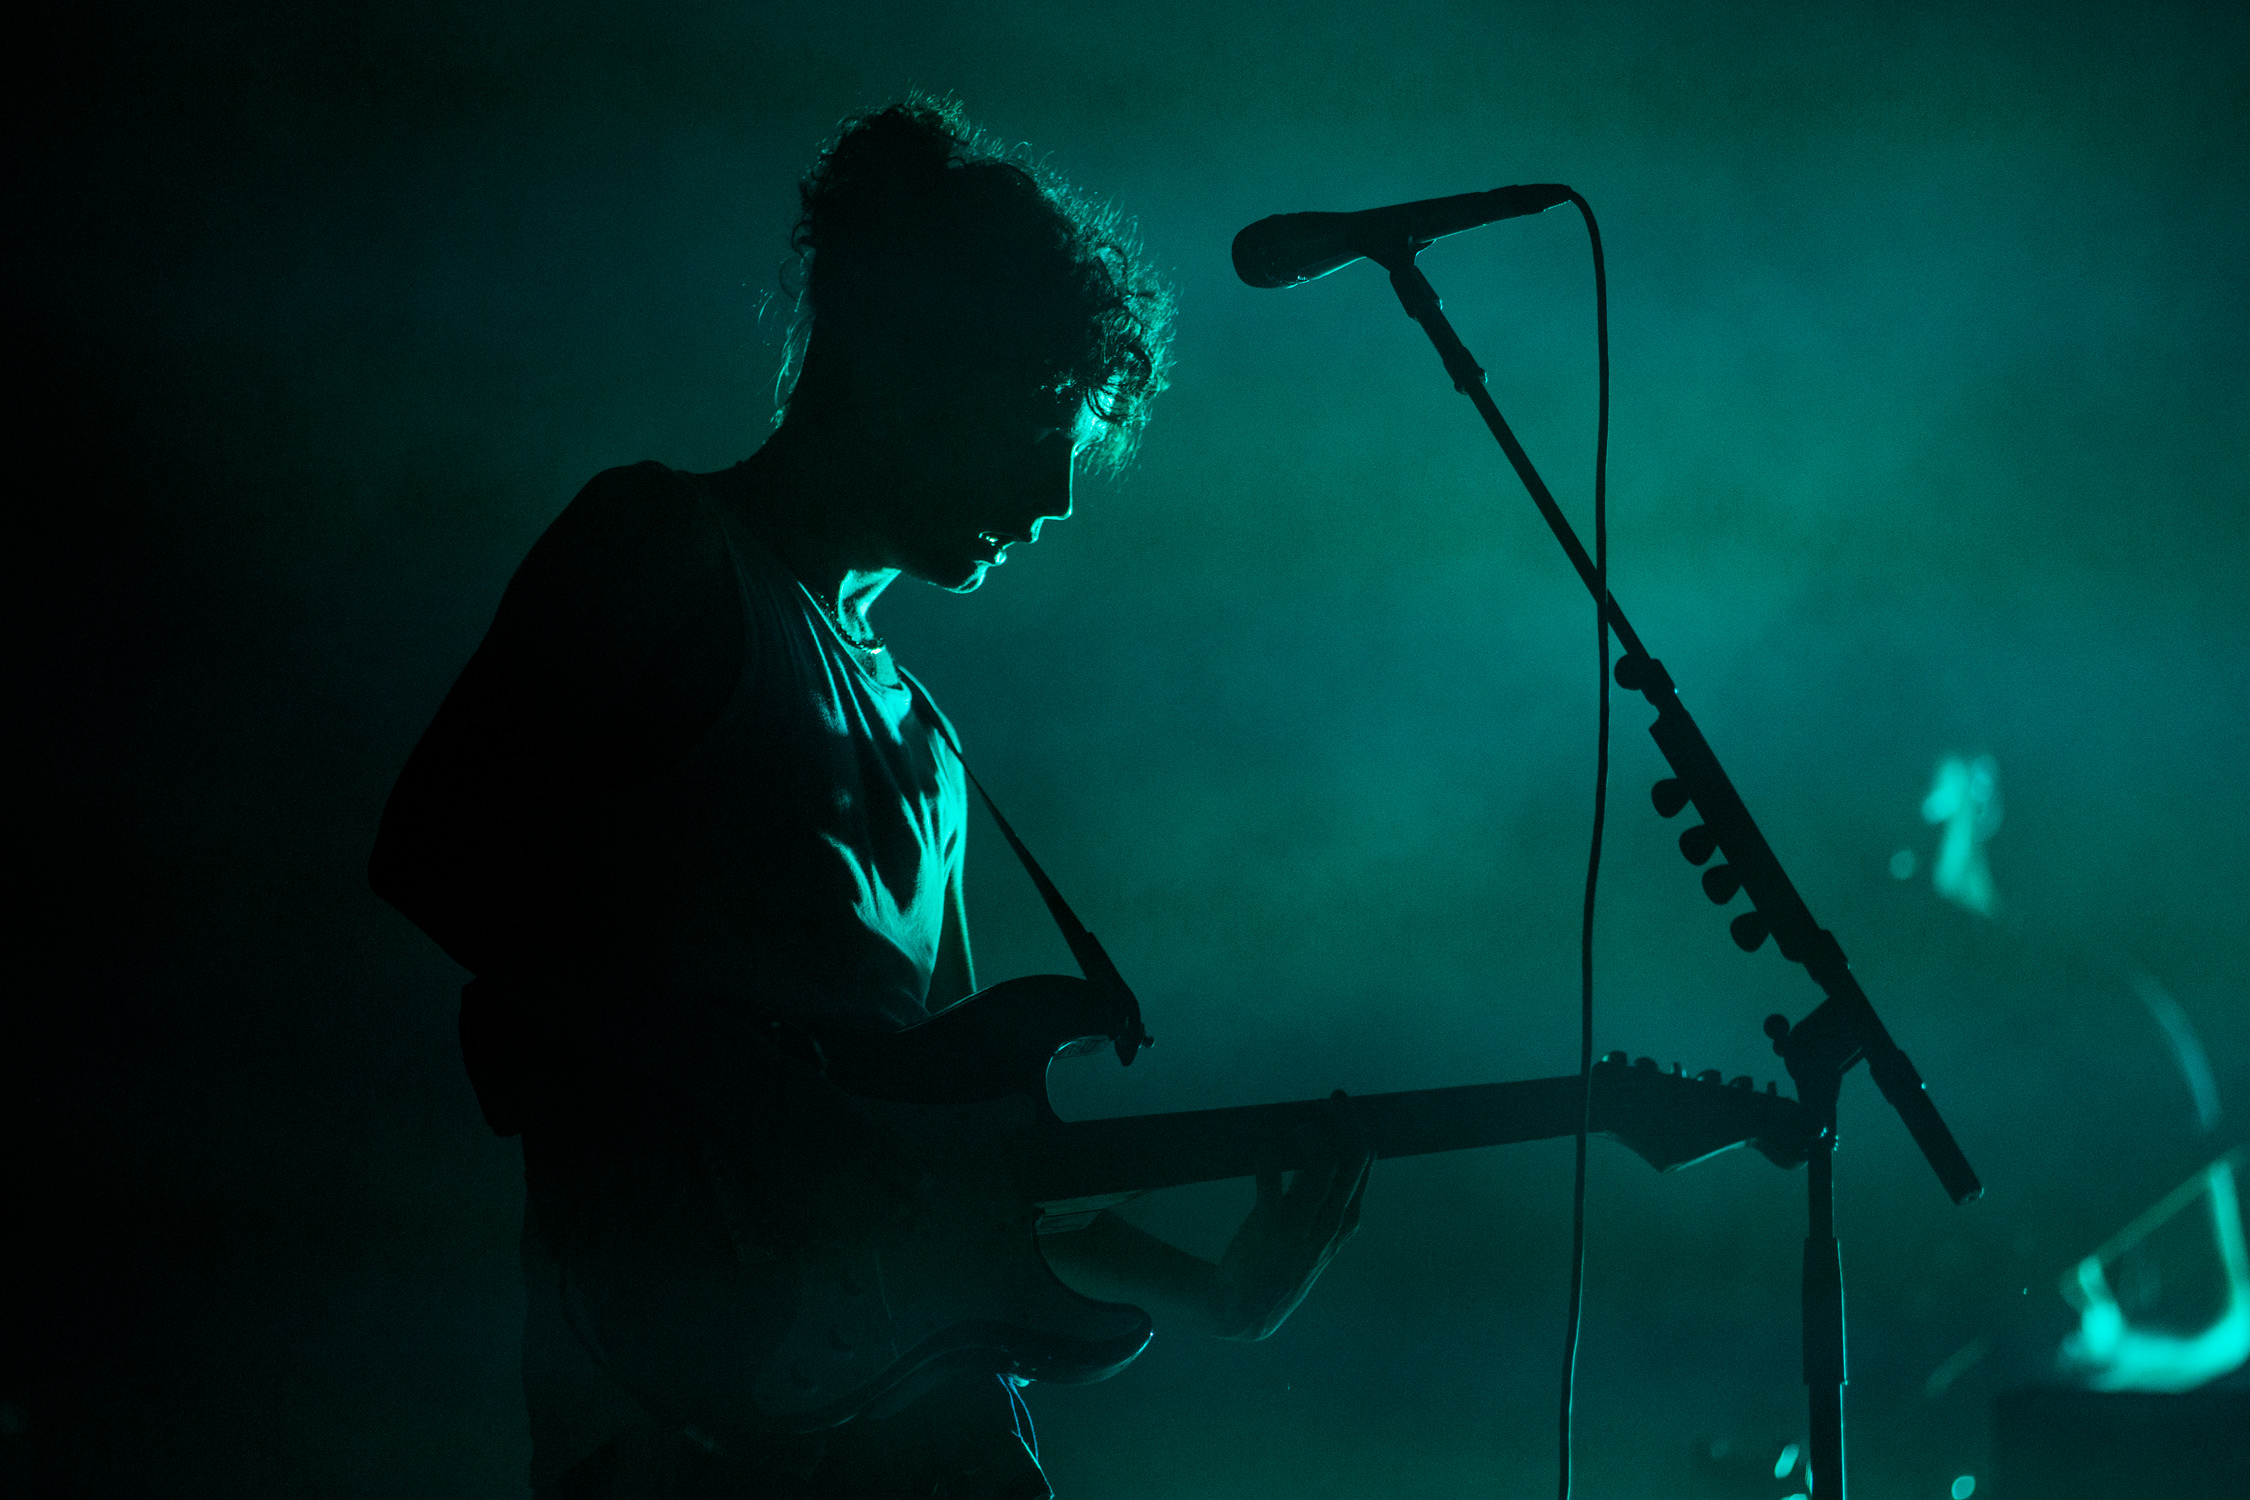 the-1975-matty-healy-live-show-silhouette-AnnaLeeMedia